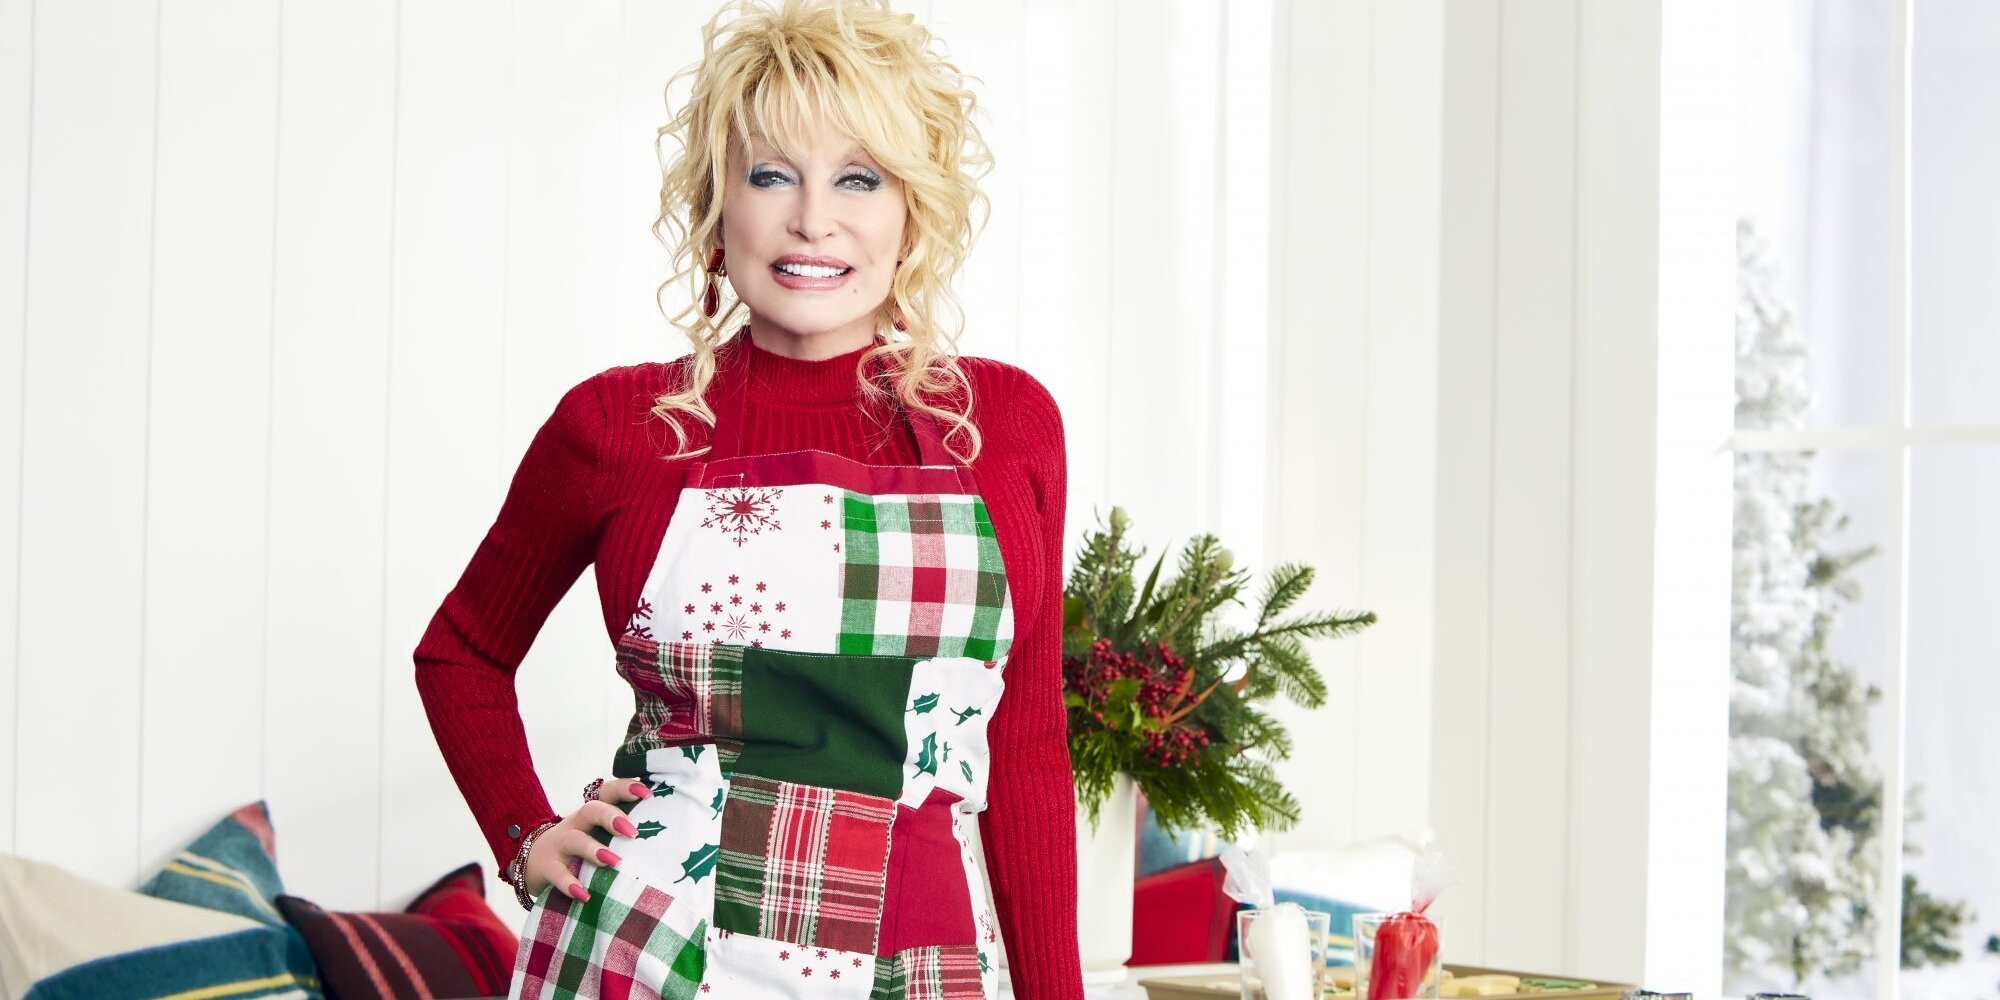 Dolly Parton Teams Up With Williams Sonoma for a Holiday Collection Inspired by Her Childhood Christmases